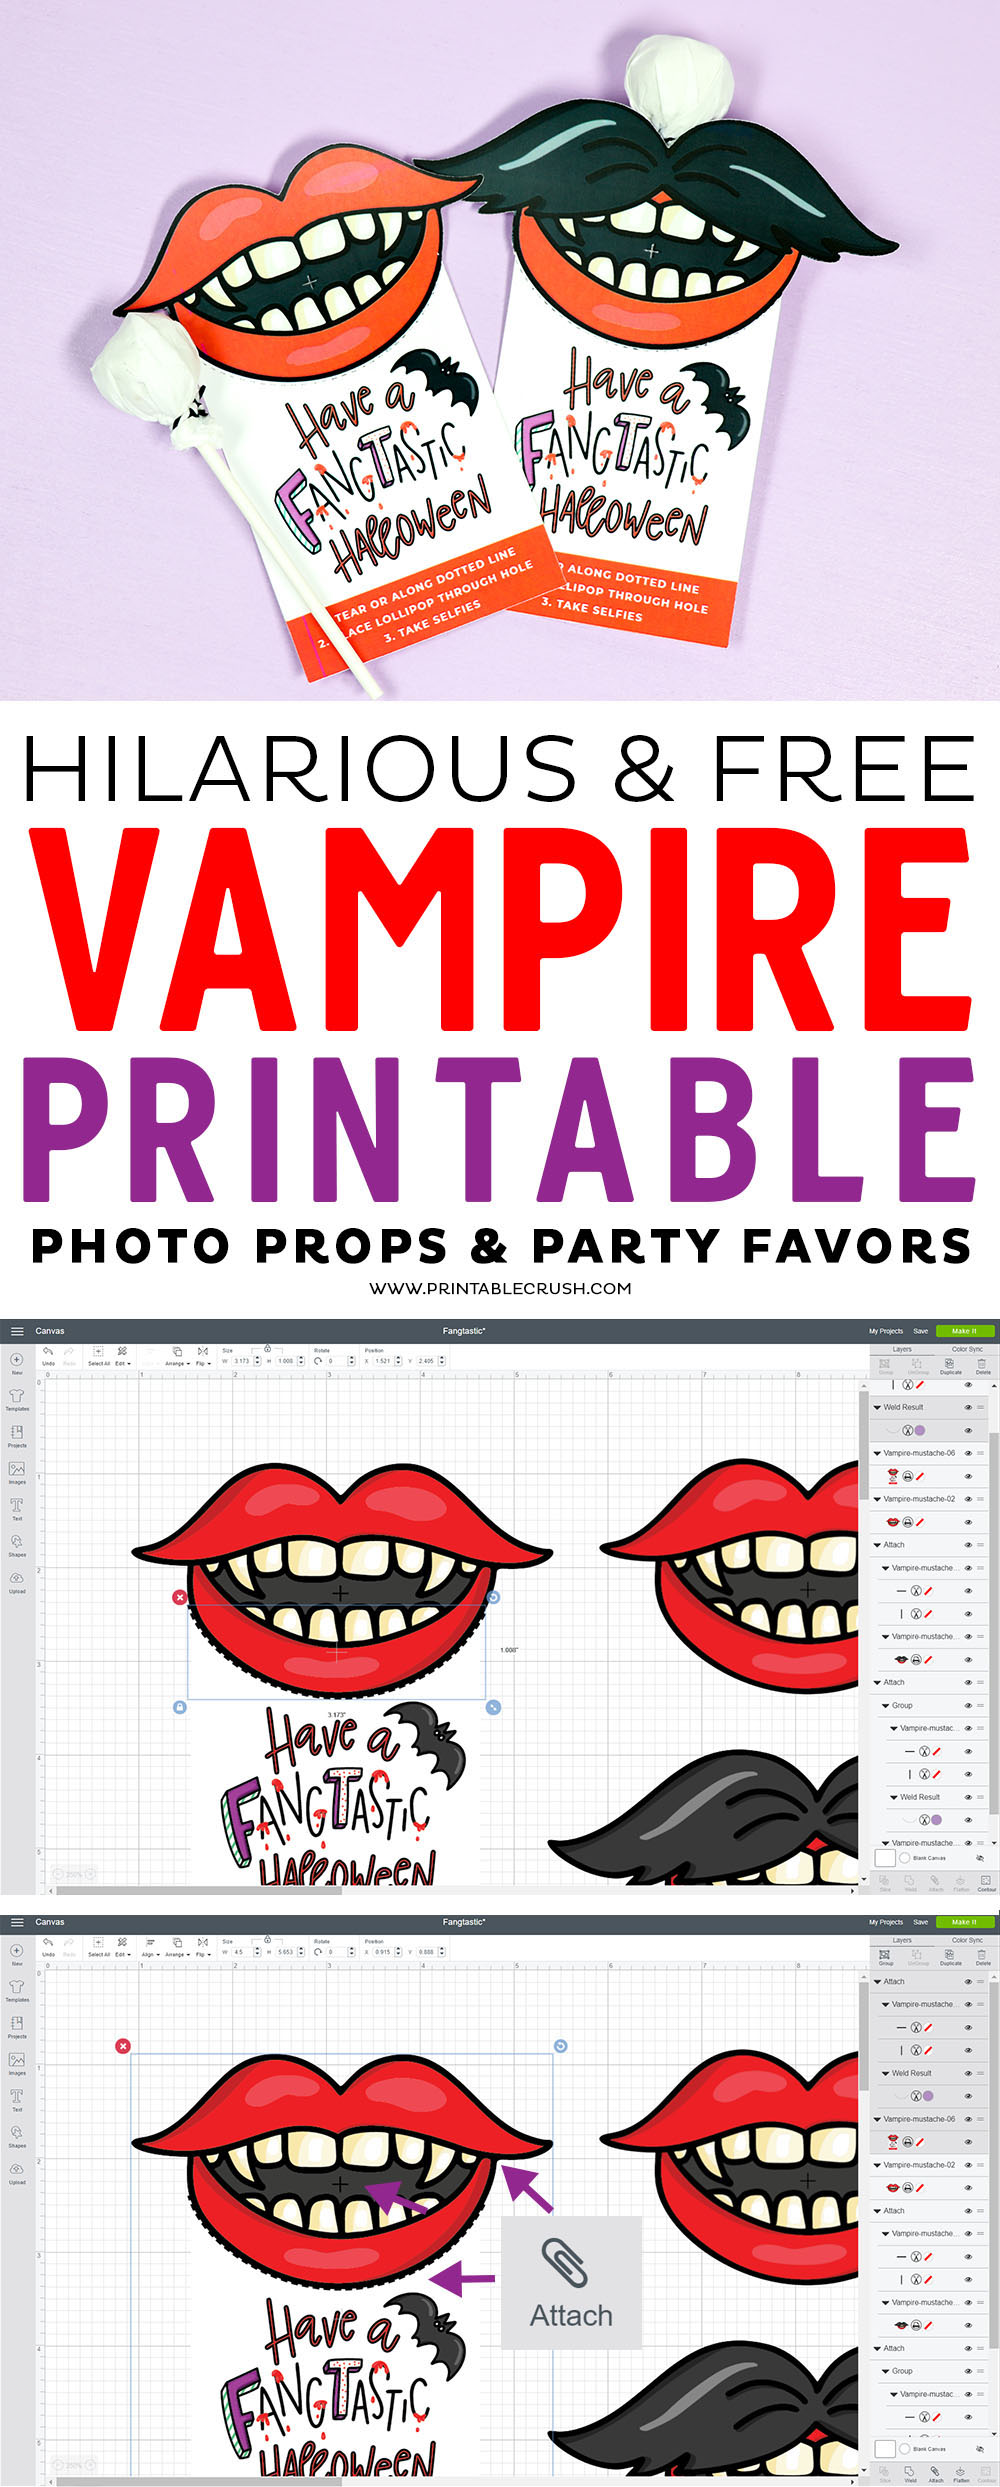 Download these Hilarious and FREE Vampire Printable Photo Props and Party Favors!